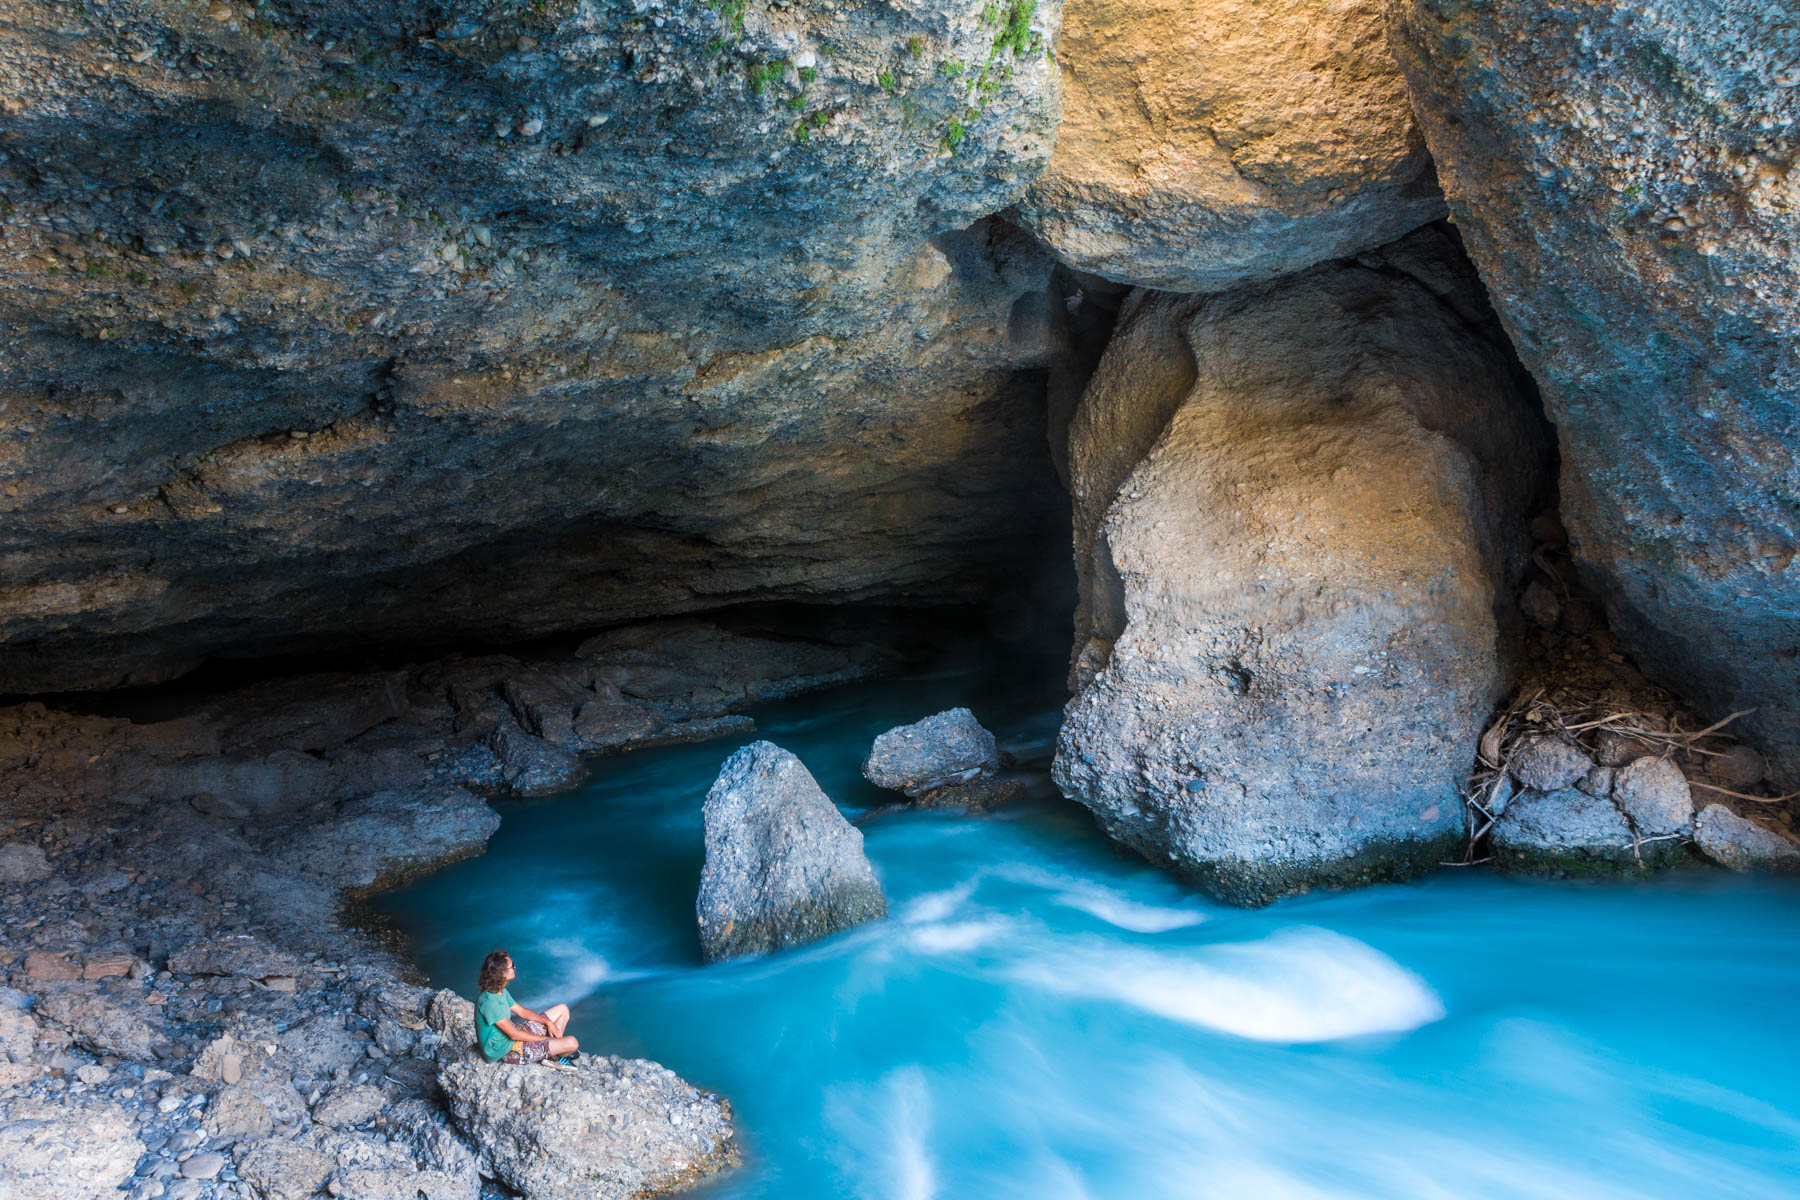 A cave along the Aksu river in Kazakhstan - Lost With Purpose